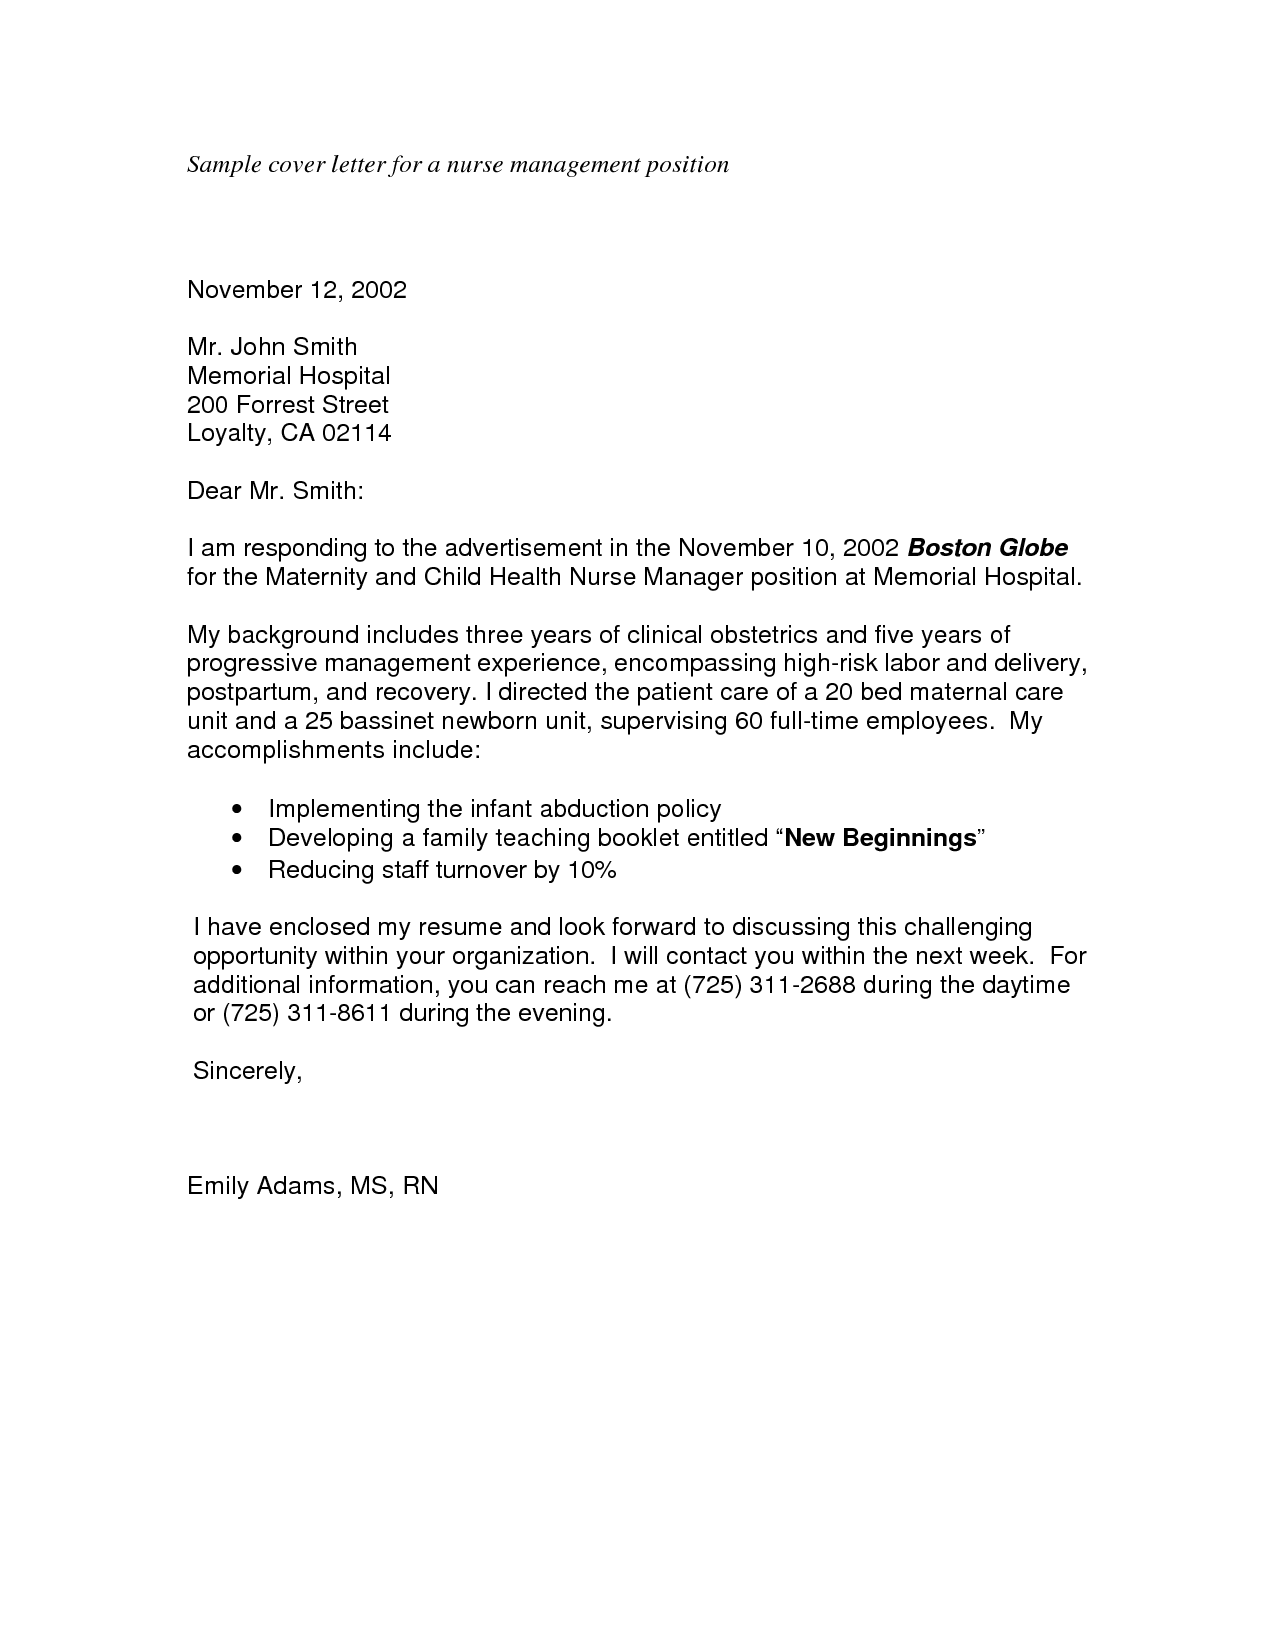 Sample nursing application cover letters sample cover letter for sample nursing application cover letters sample cover letter for a nurse management position pdf madrichimfo Choice Image